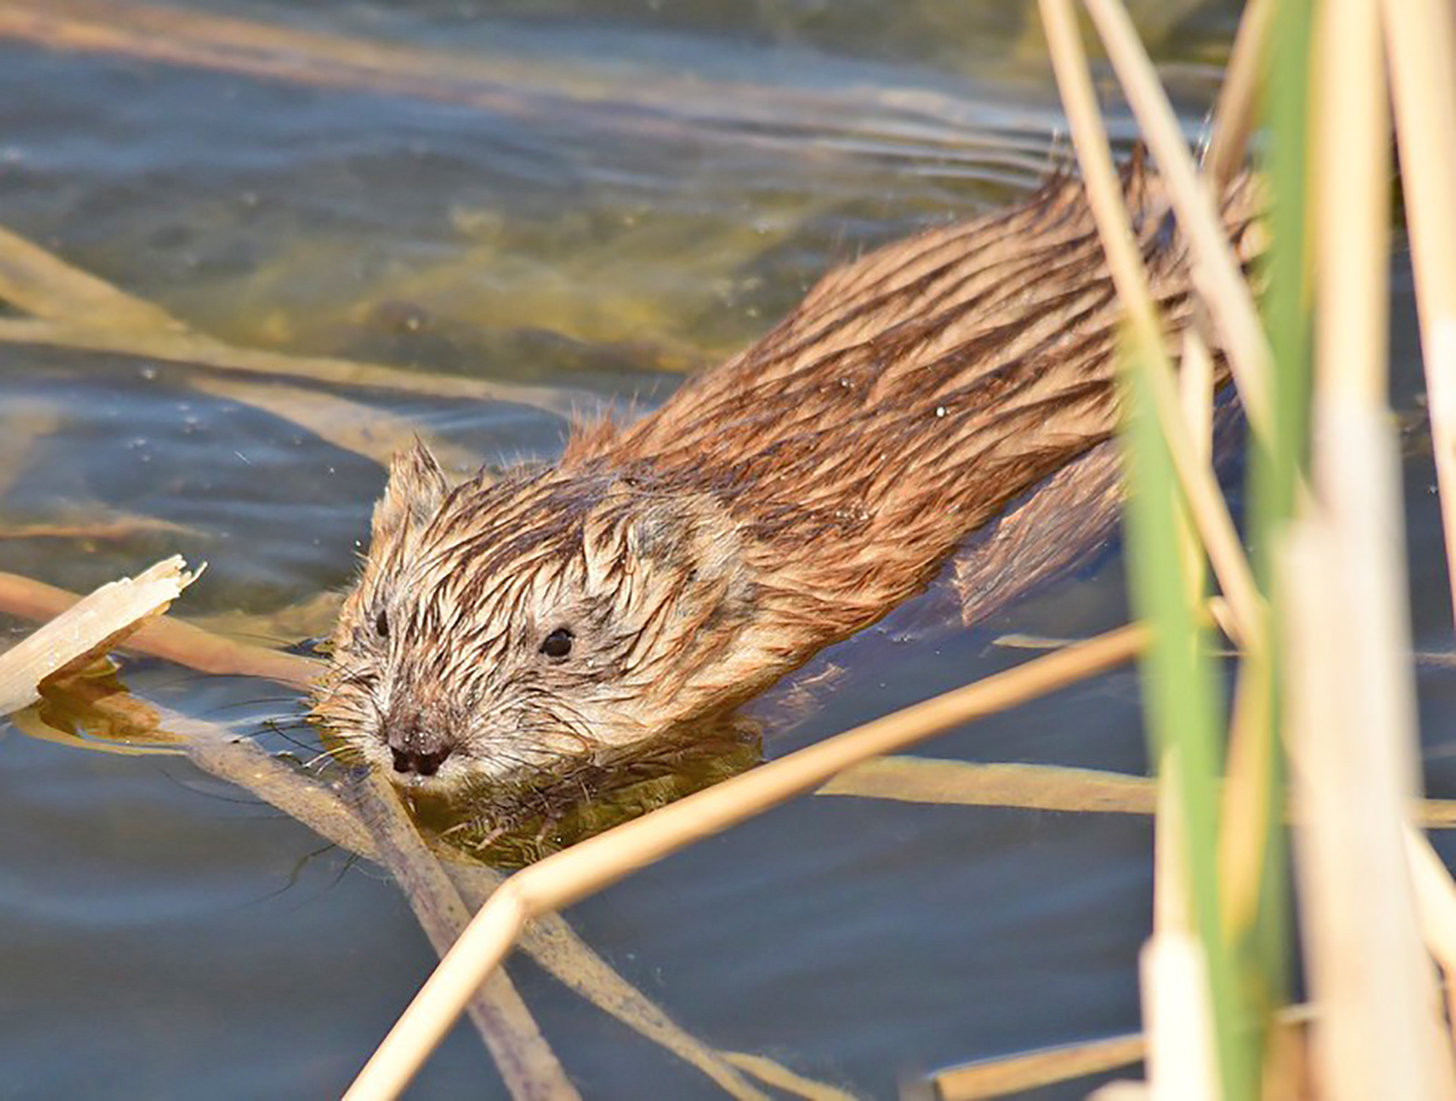 The muskrat is a behind-the-scenes marshmaker.